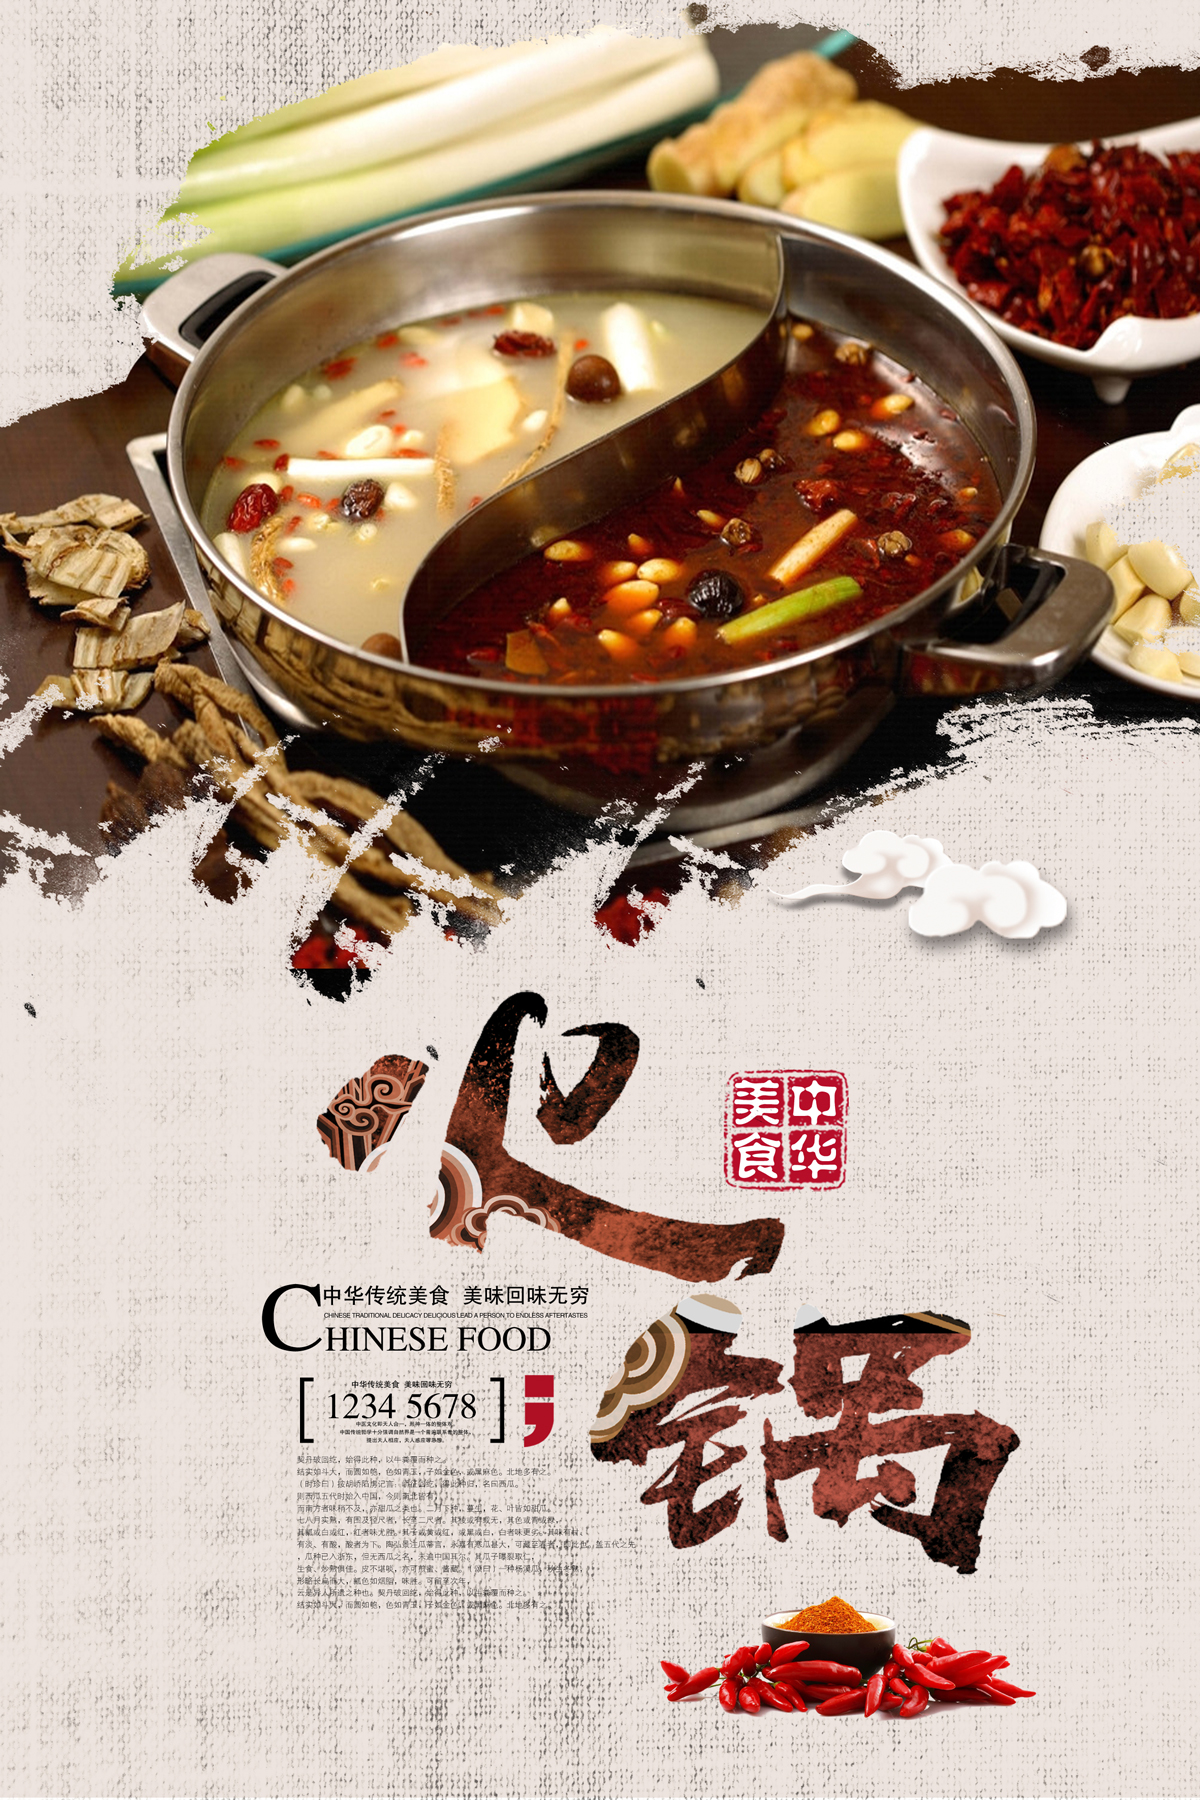 Poster design download - Chinesefontdesign Com 2017 02 07 18 19 47 Chinese Food Hot Pot Restaurant Poster Design